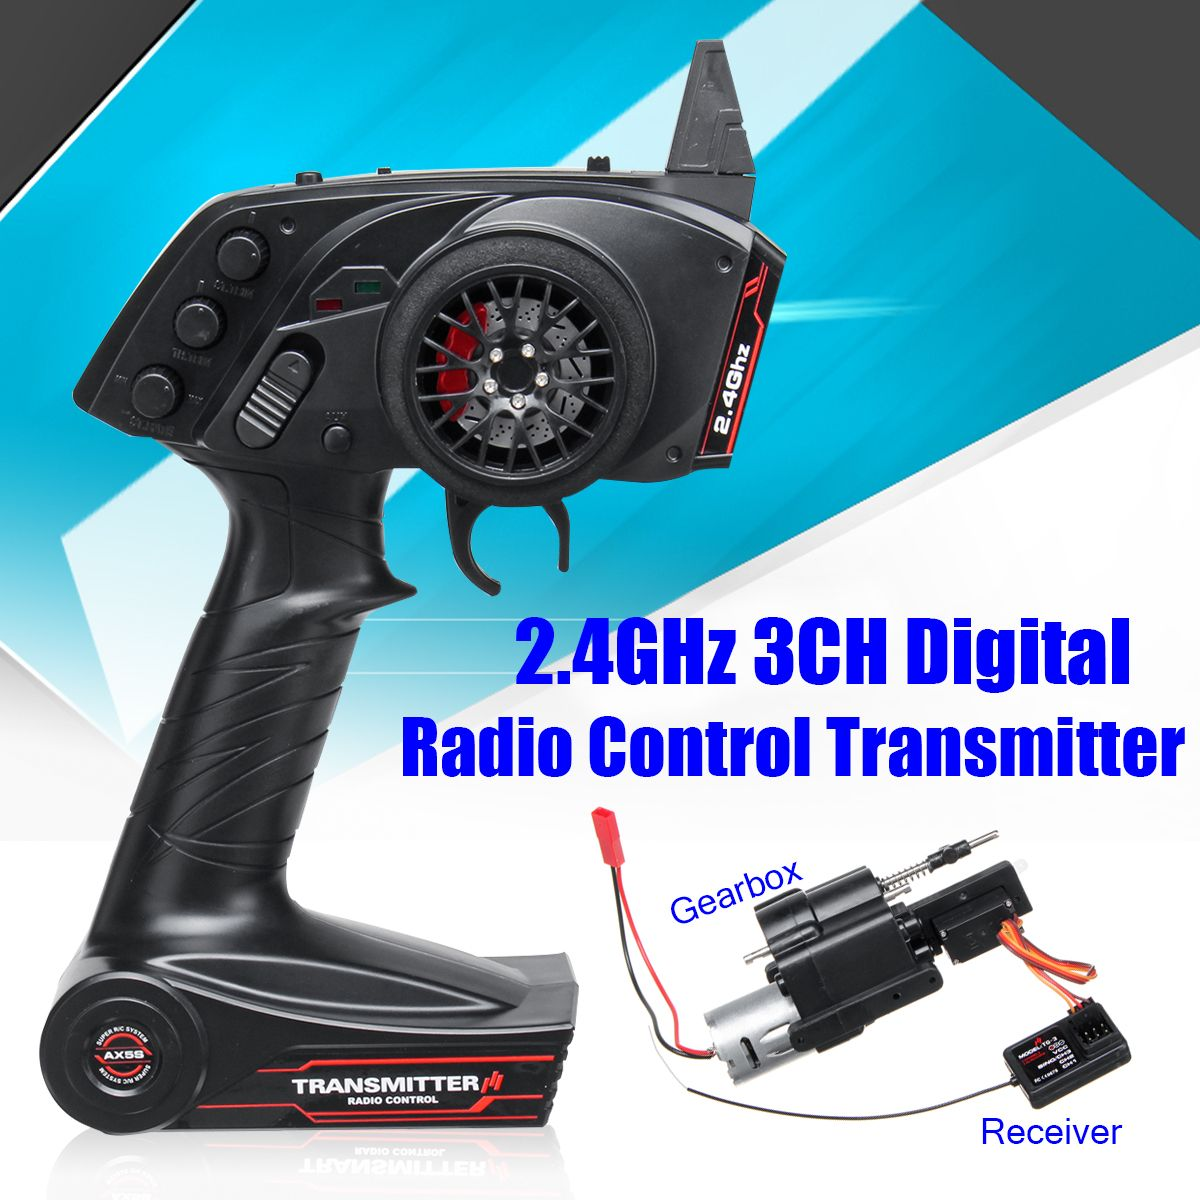 Rc Car Radio Transmitter And Speed Change Gear Box Throttle Limit Range For WPL 3CH B1 B24 B16 C24 1/16 4WD 6WD Super Active